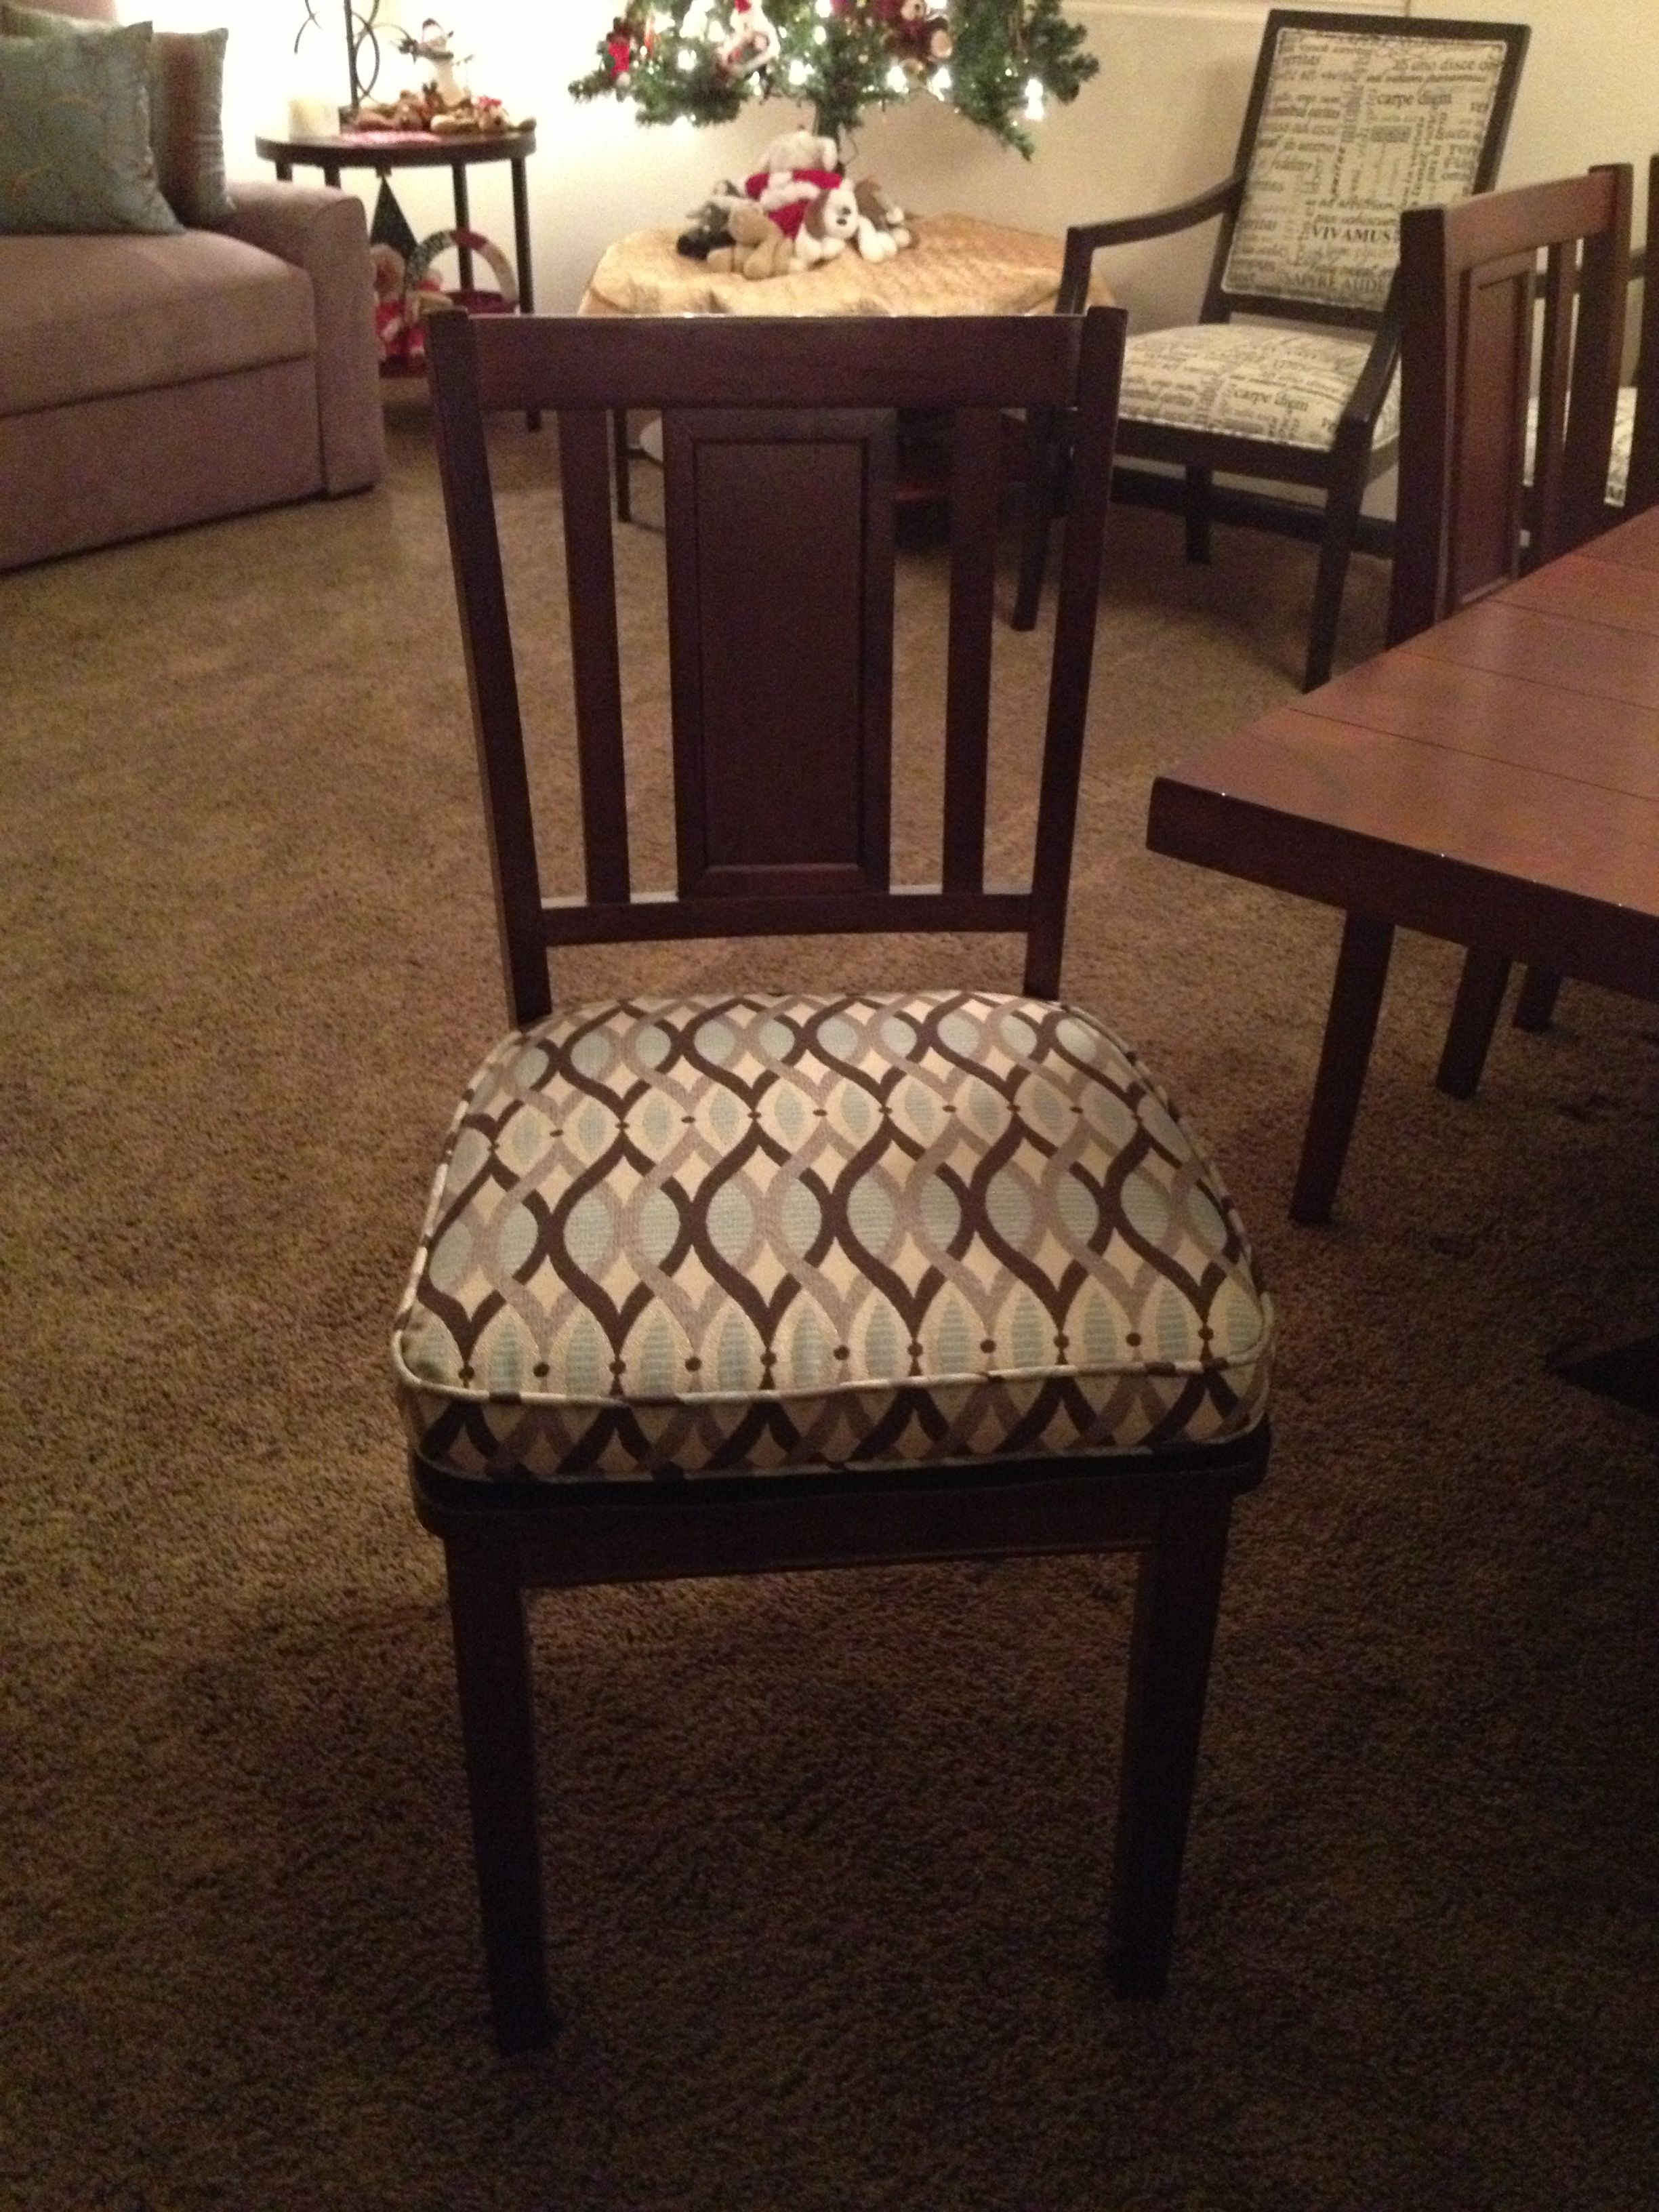 Charmant Reupholstered Dining Chairs With A Repeat Pattern Fabric And Piping.